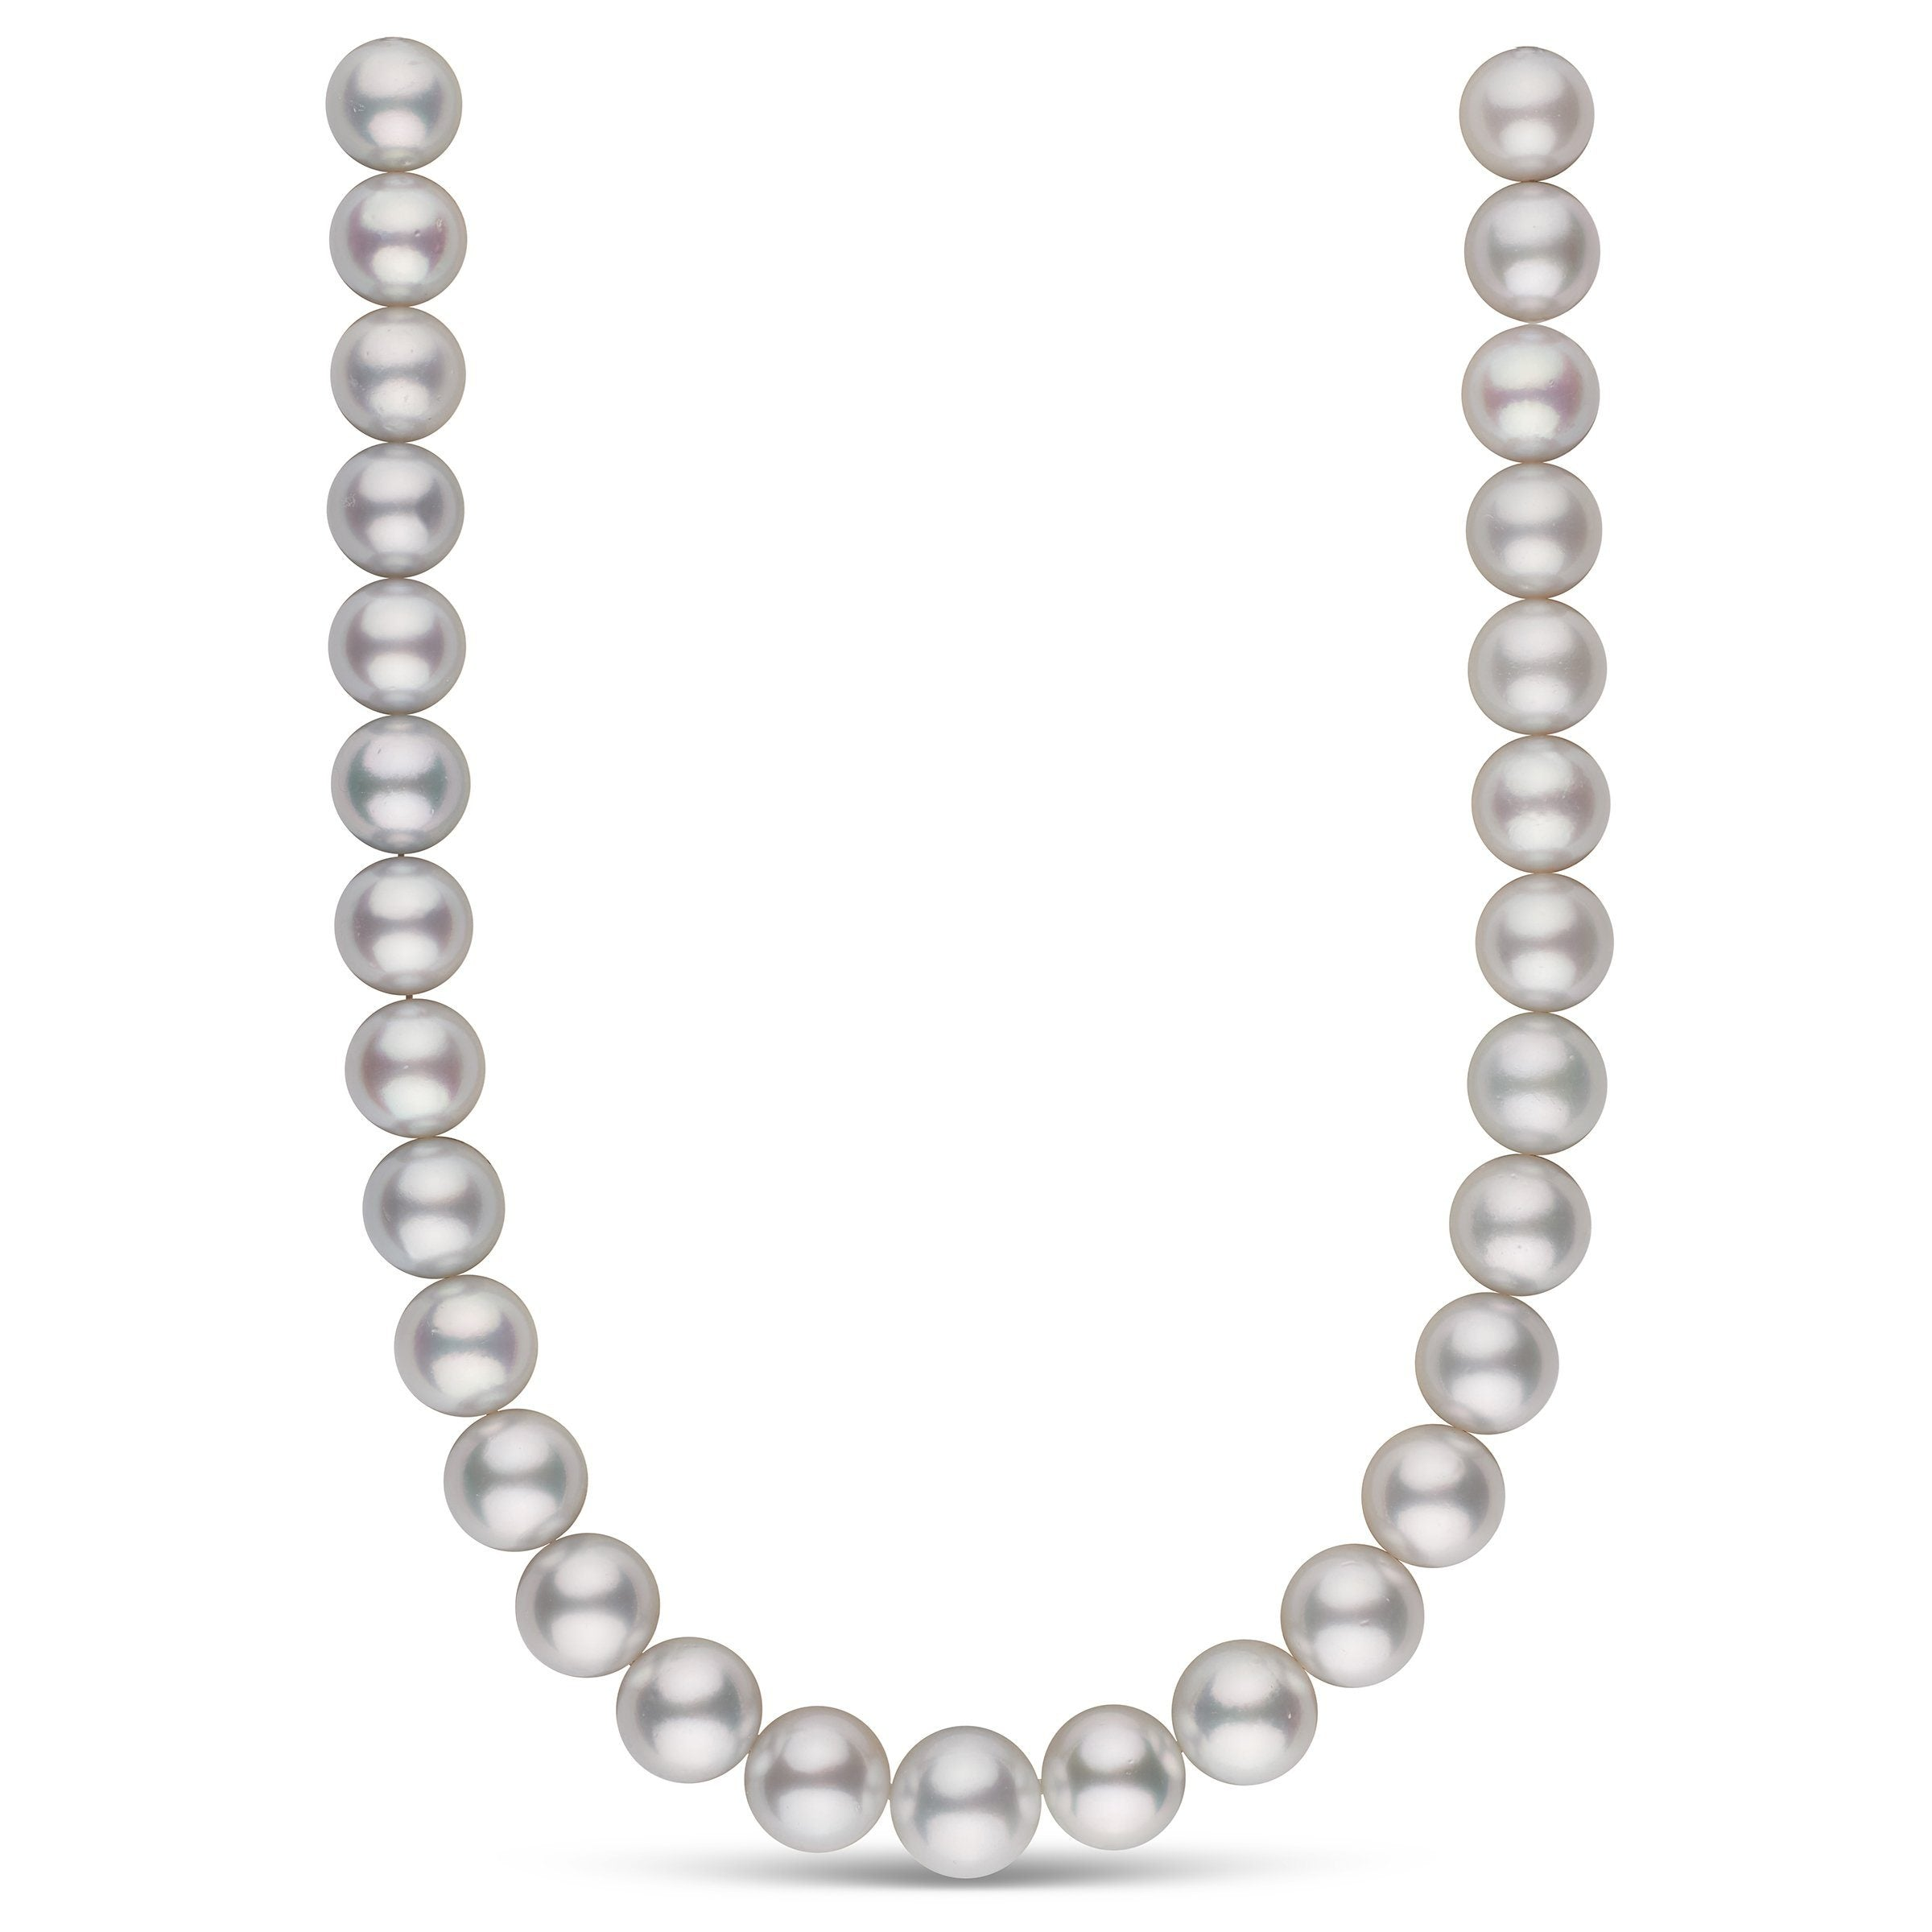 14.0-15.7 mm AA+/AAA White South Sea Round Pearl Necklace